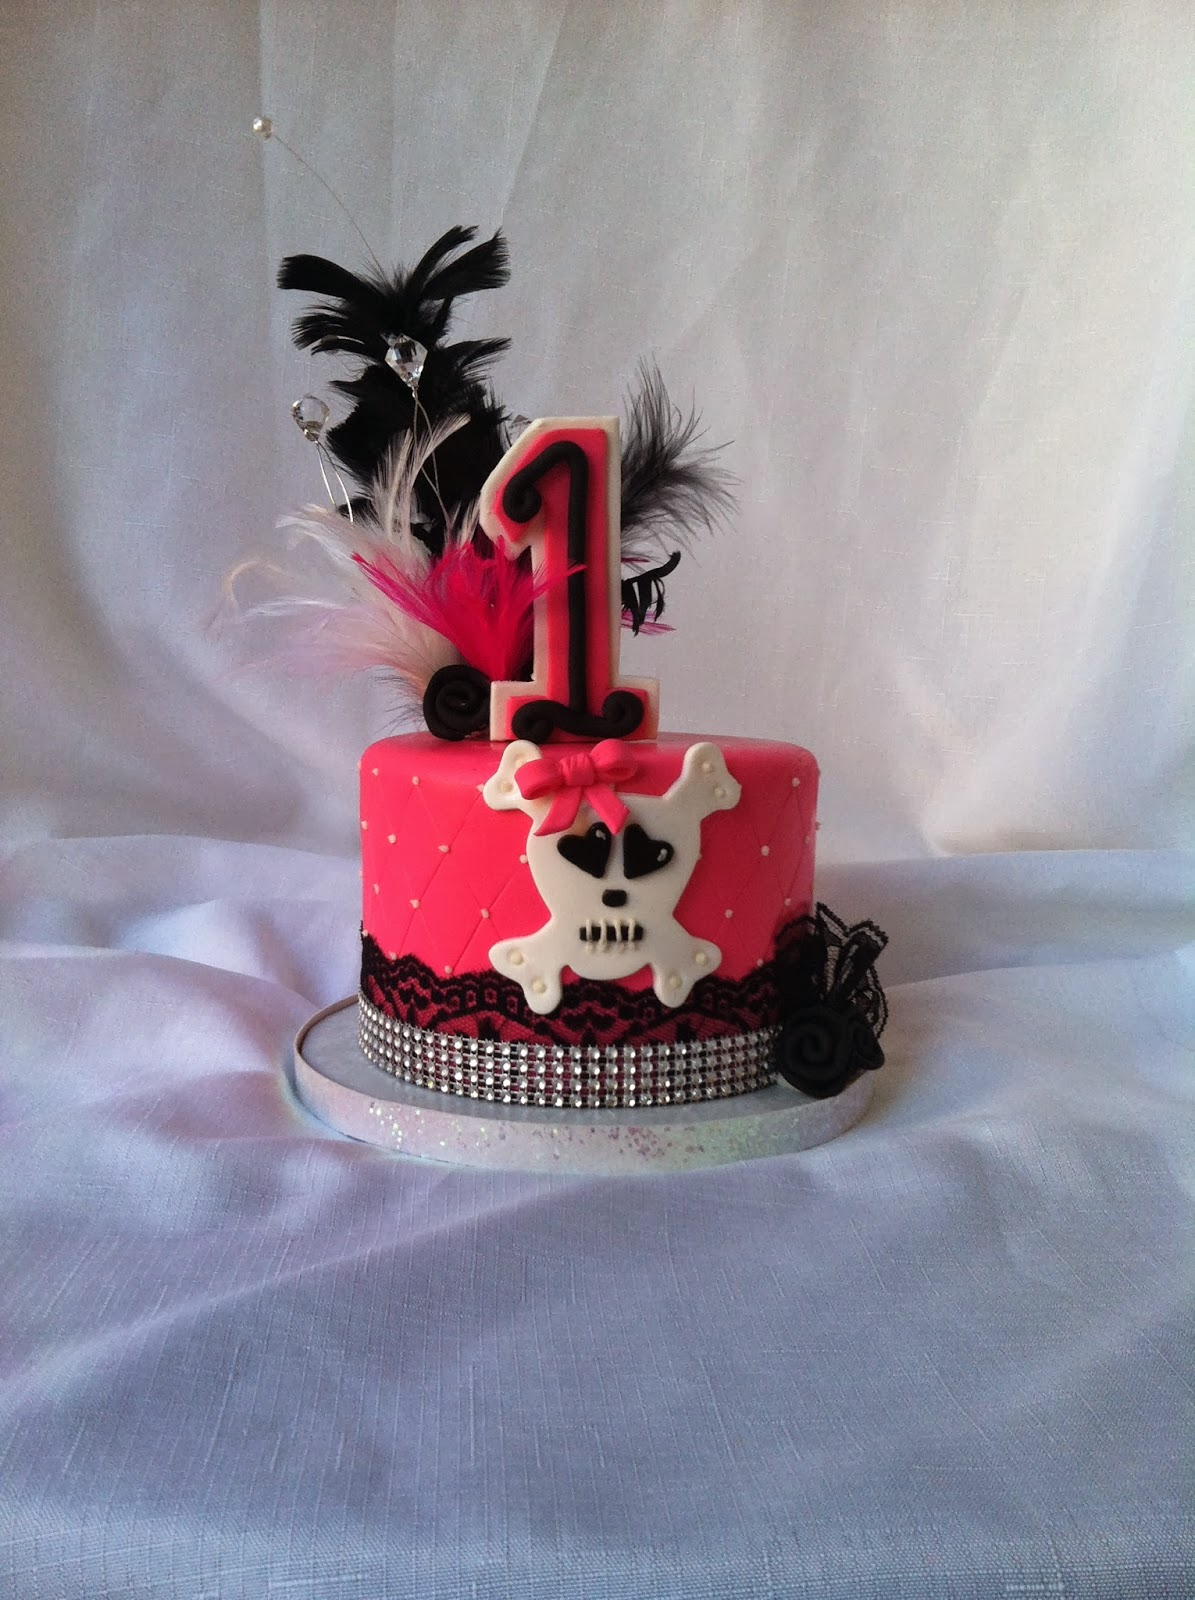 A Little Something Sweet: Pink Pirate Cake Topper!